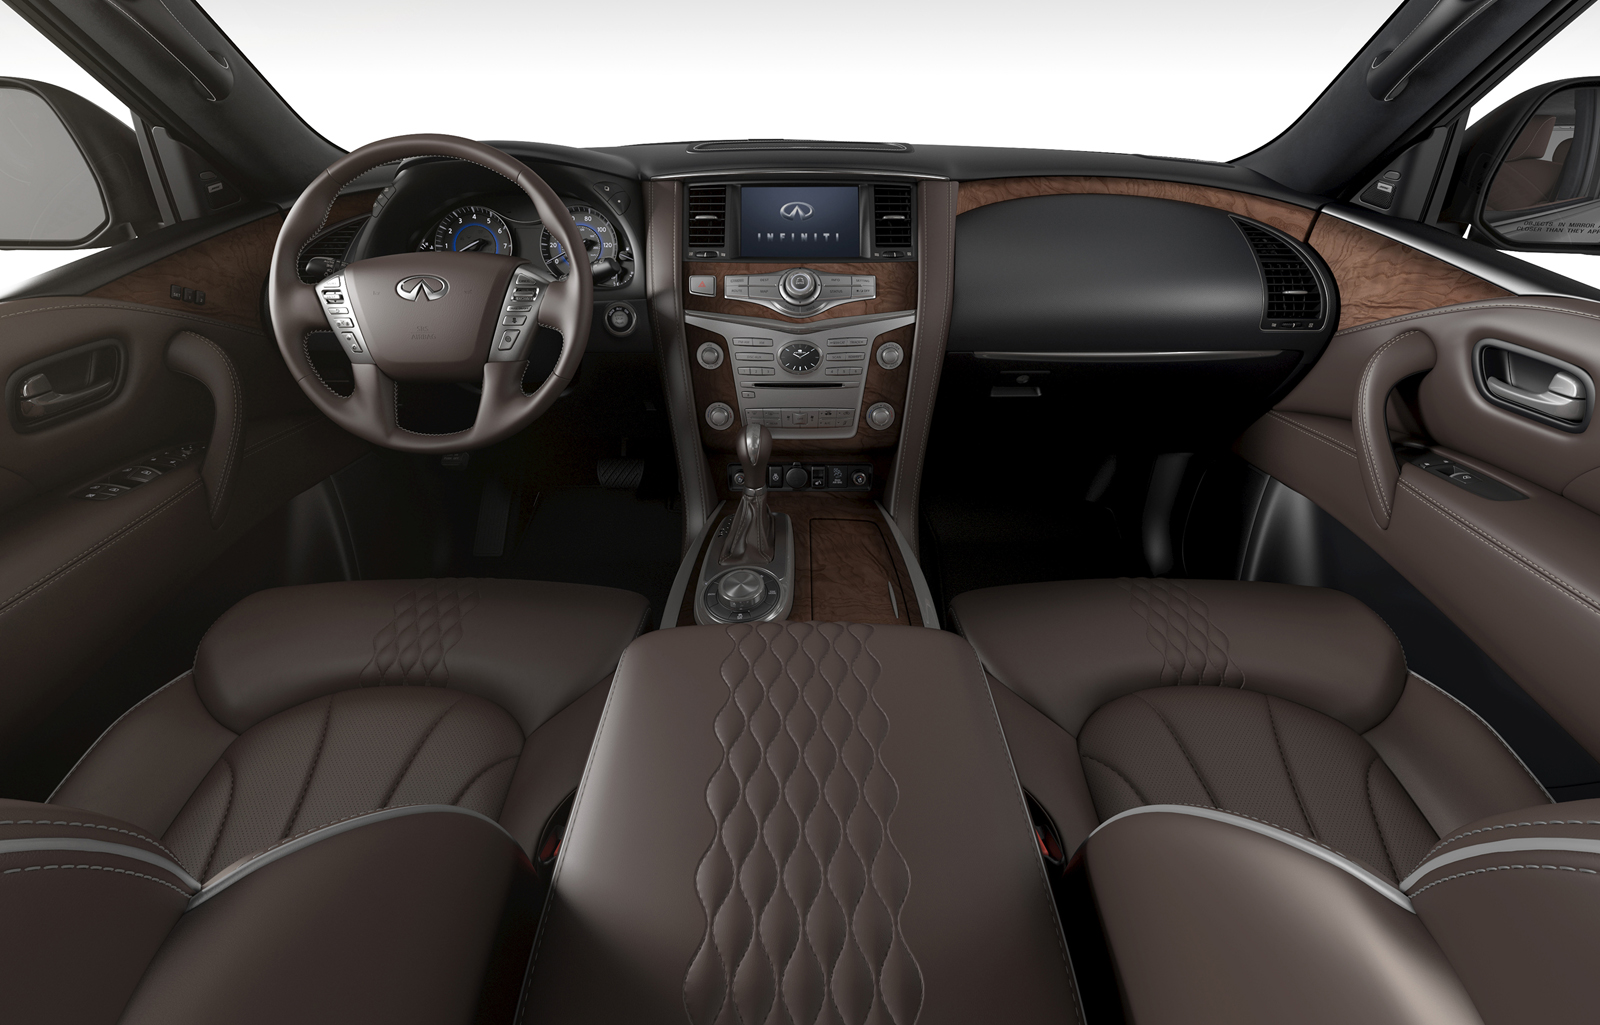 good editor never price driver car the and has infinity sheetmetal message looked this infiniti drive